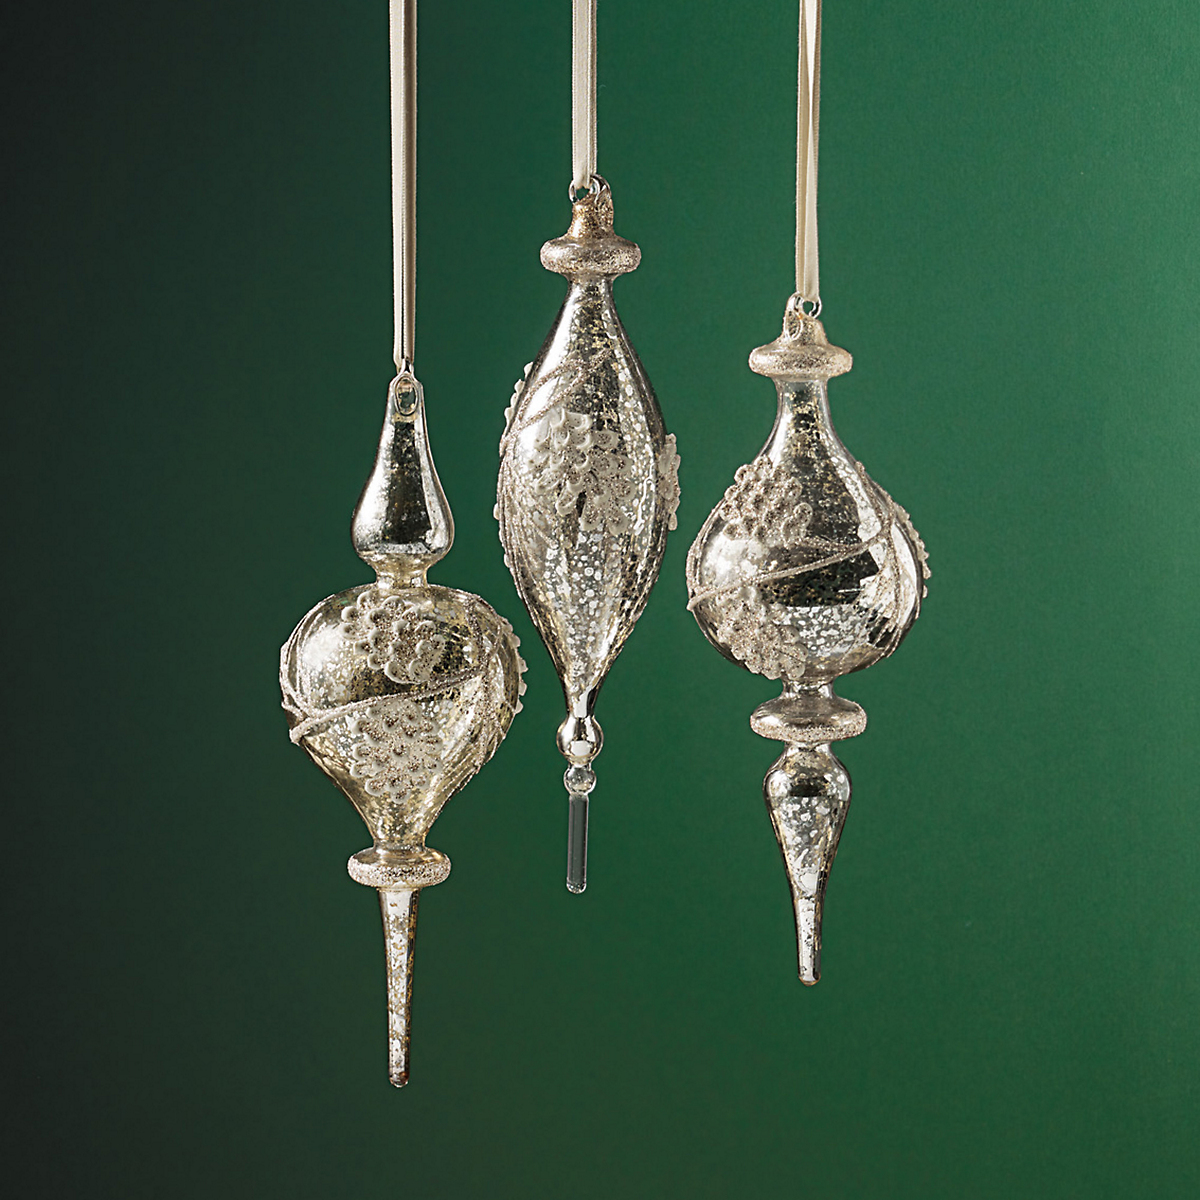 Silver Glass Finial Ornaments, Set Of 3